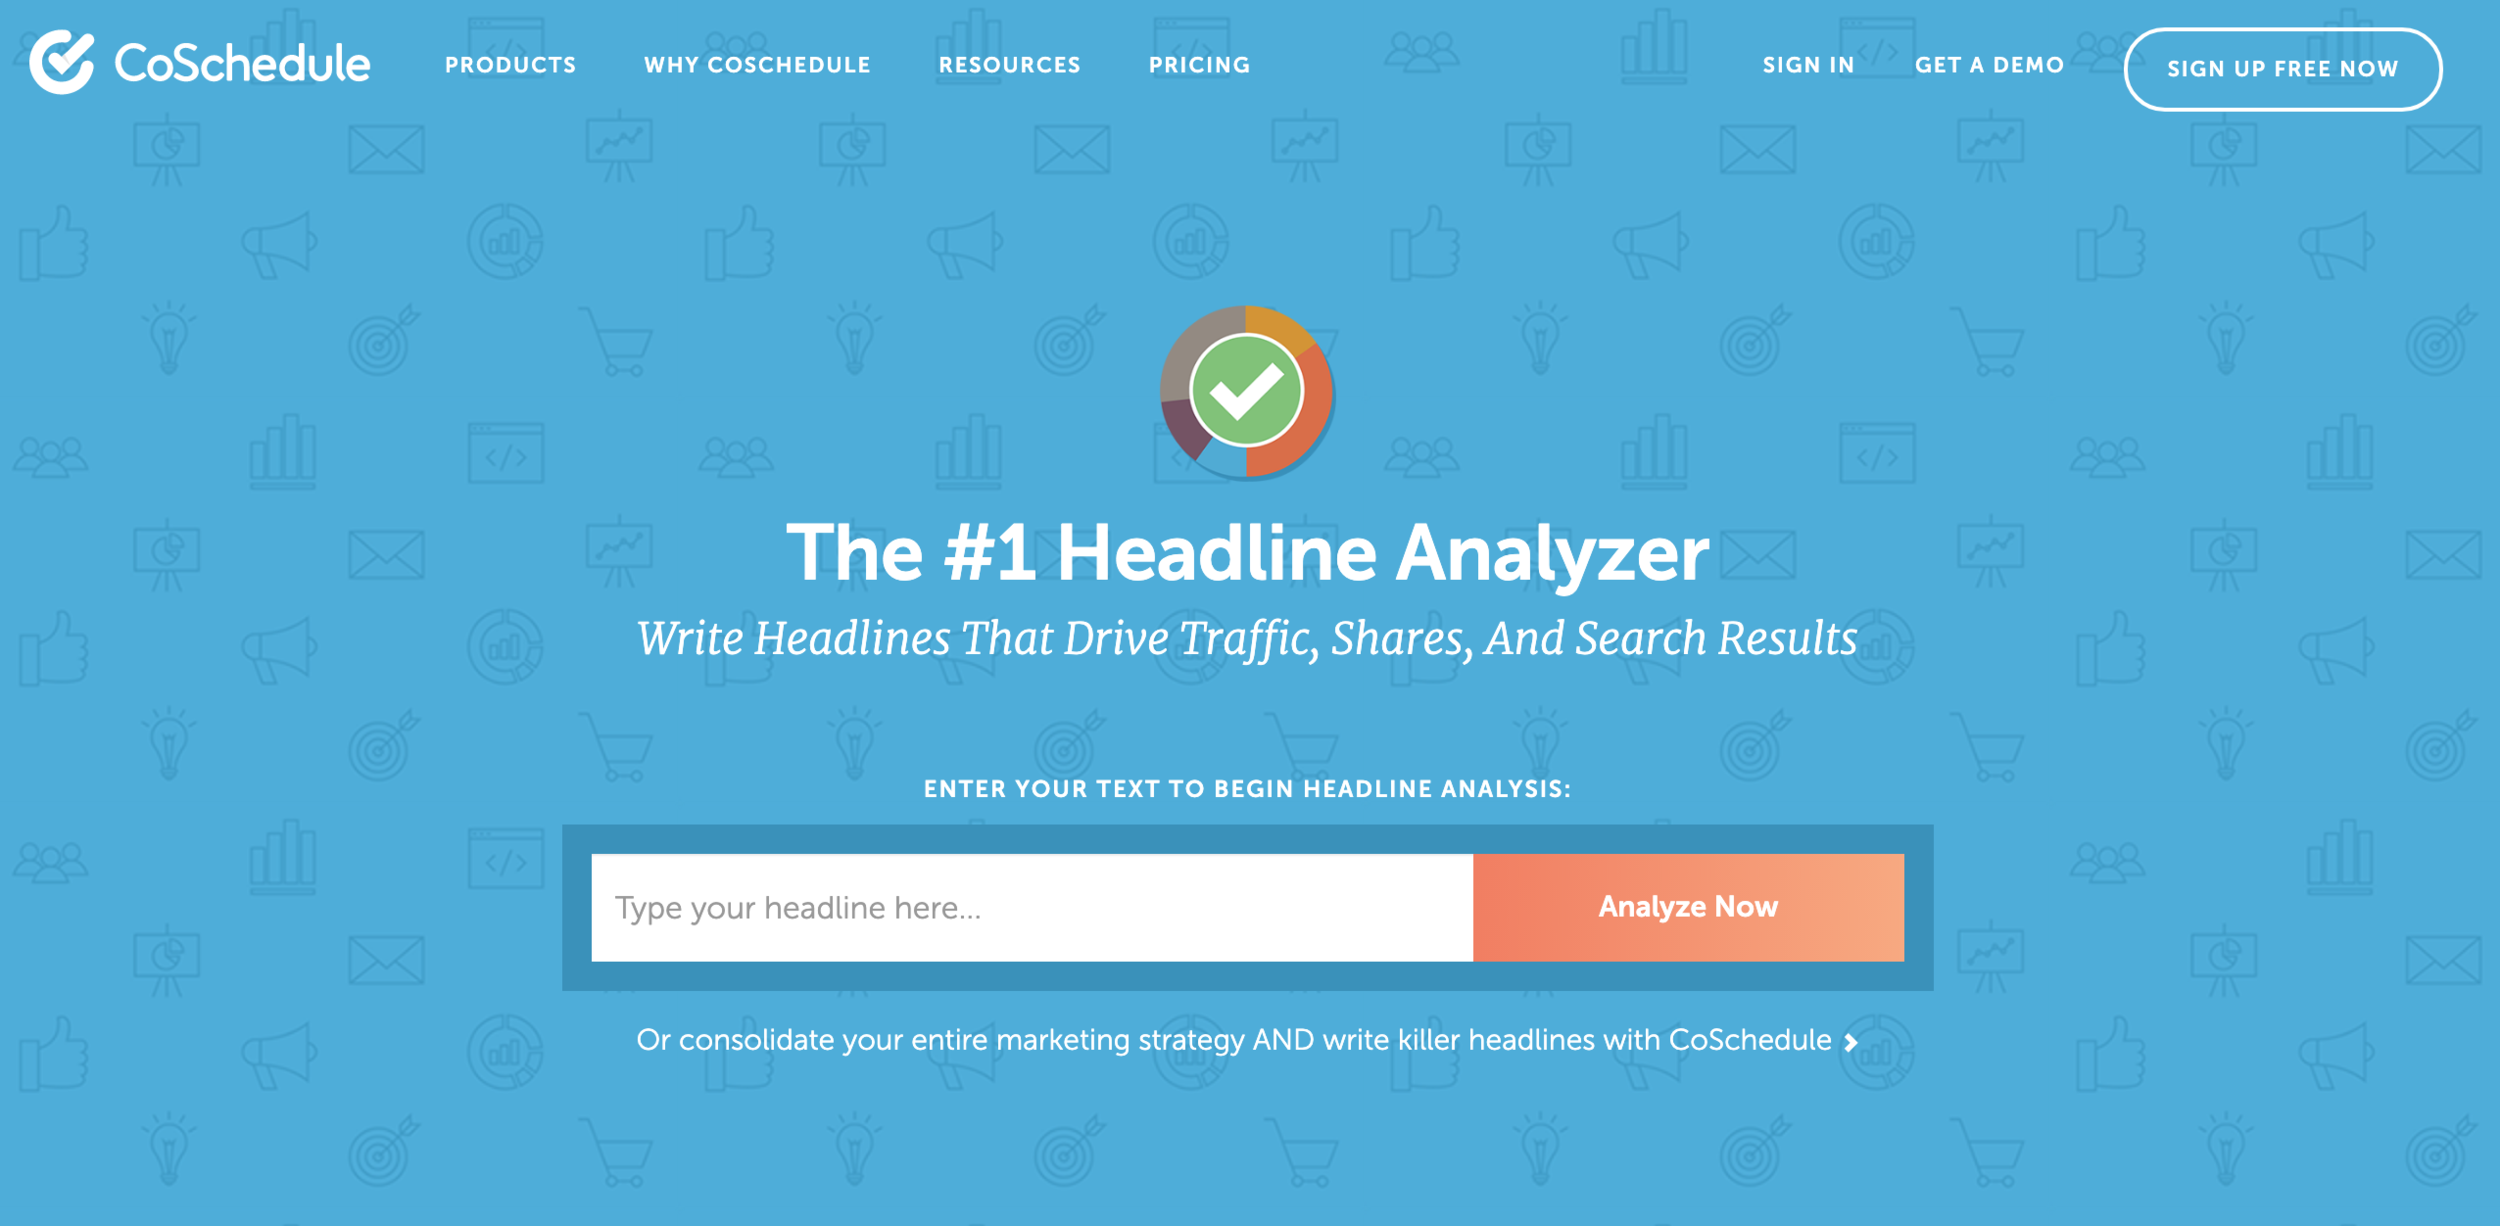 how to use coschedule's headline analyzer